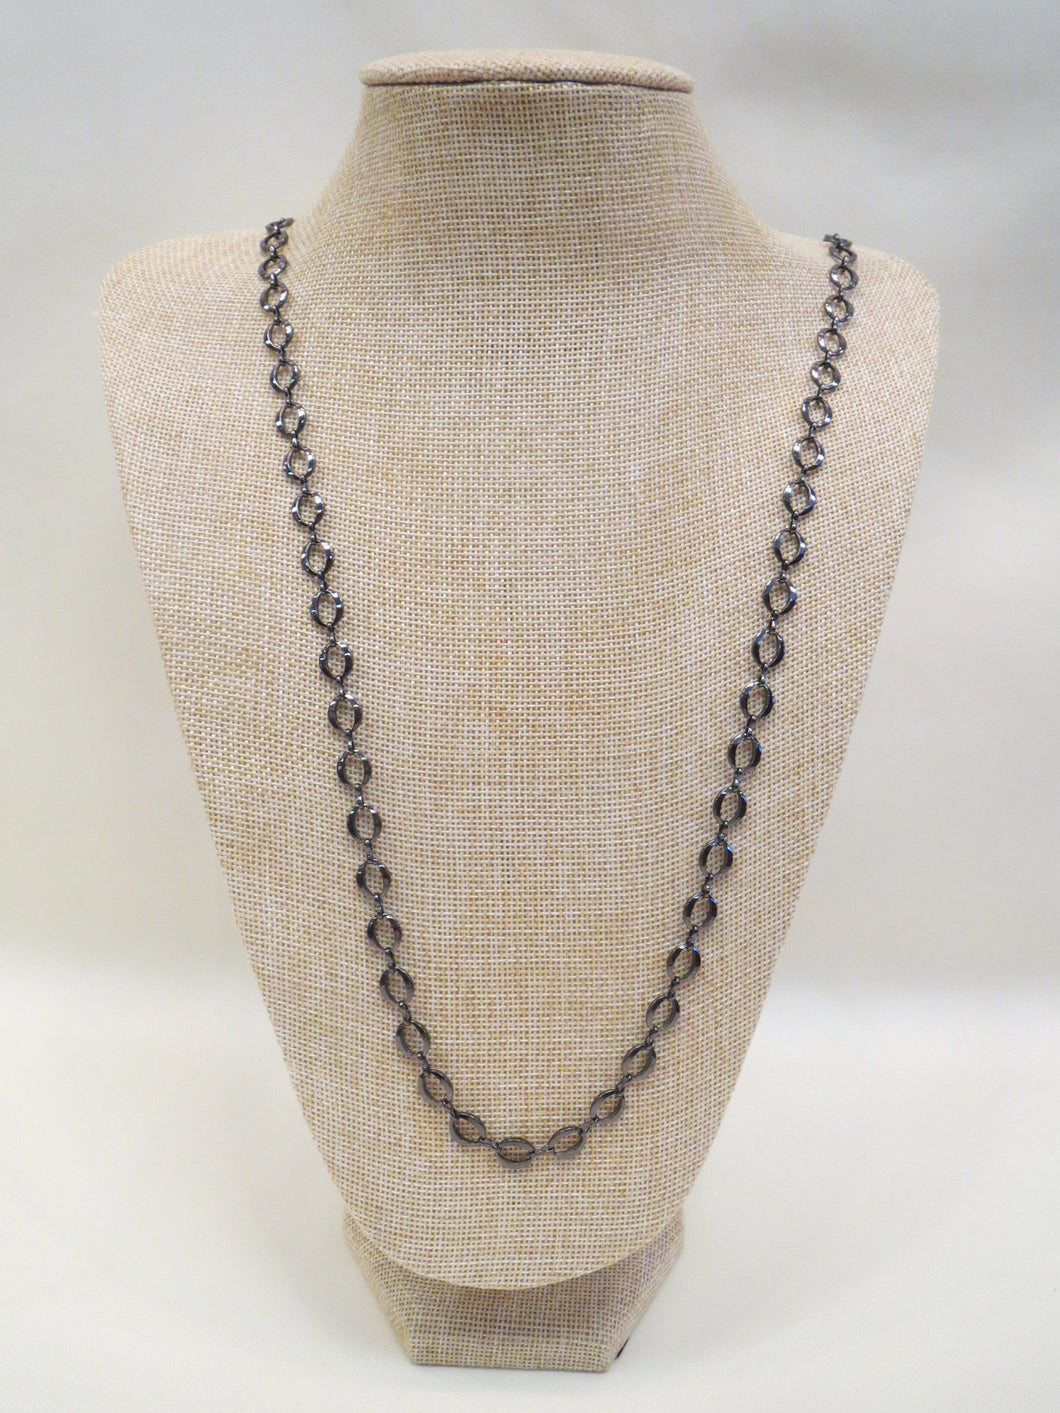 ADO | Gunmetal Chain Necklace - All Decd Out